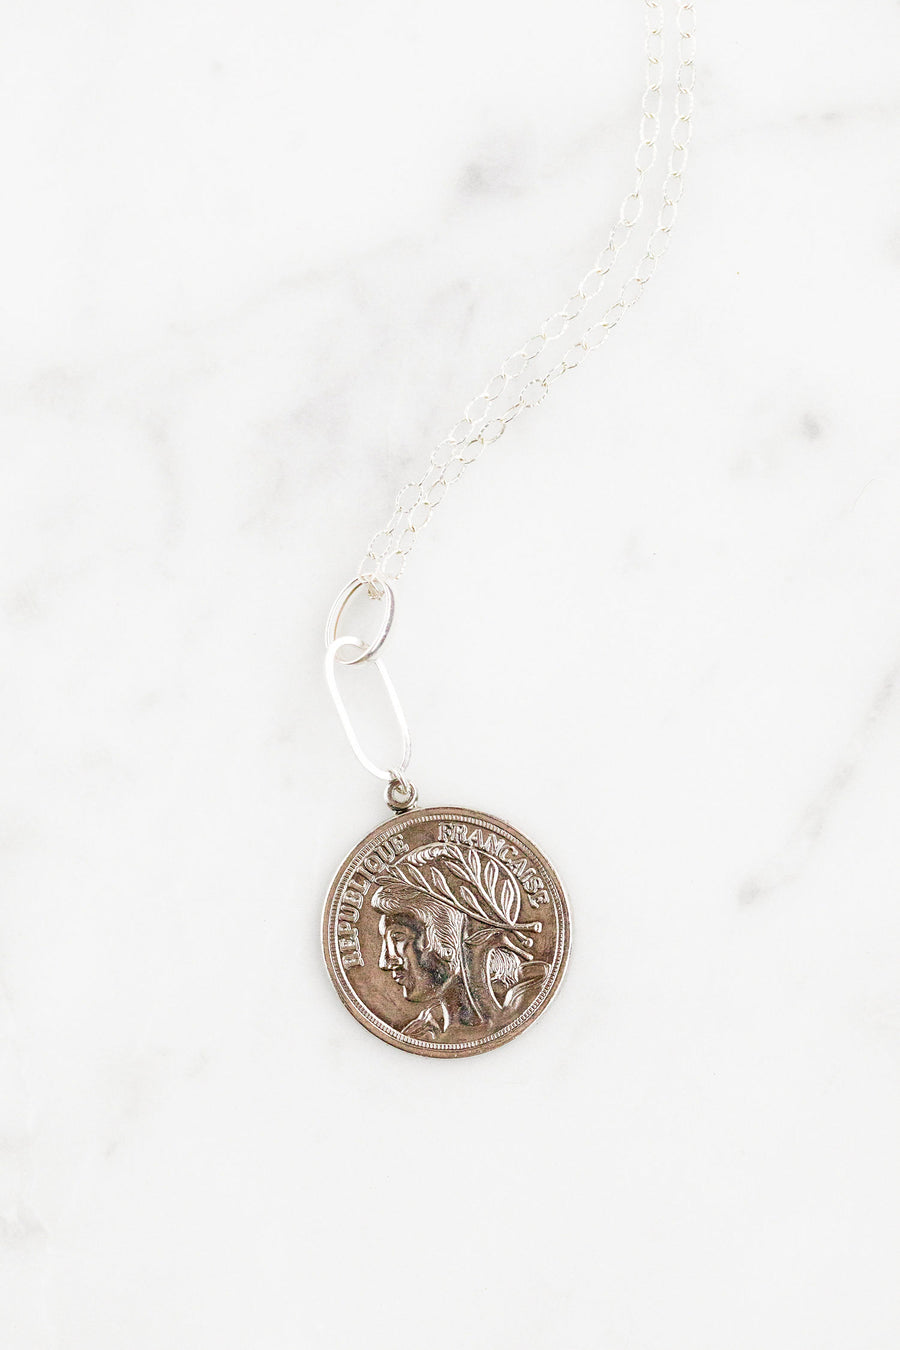 Find the perfect necklace you're looking for from Charme Silkiner! This gorgeous sterling silver necklace with a vintage French medallion is sheer perfection.  Great for layering or wearing alone the Galen Necklace is the perfect piece of unique jewelry that everyone should own.